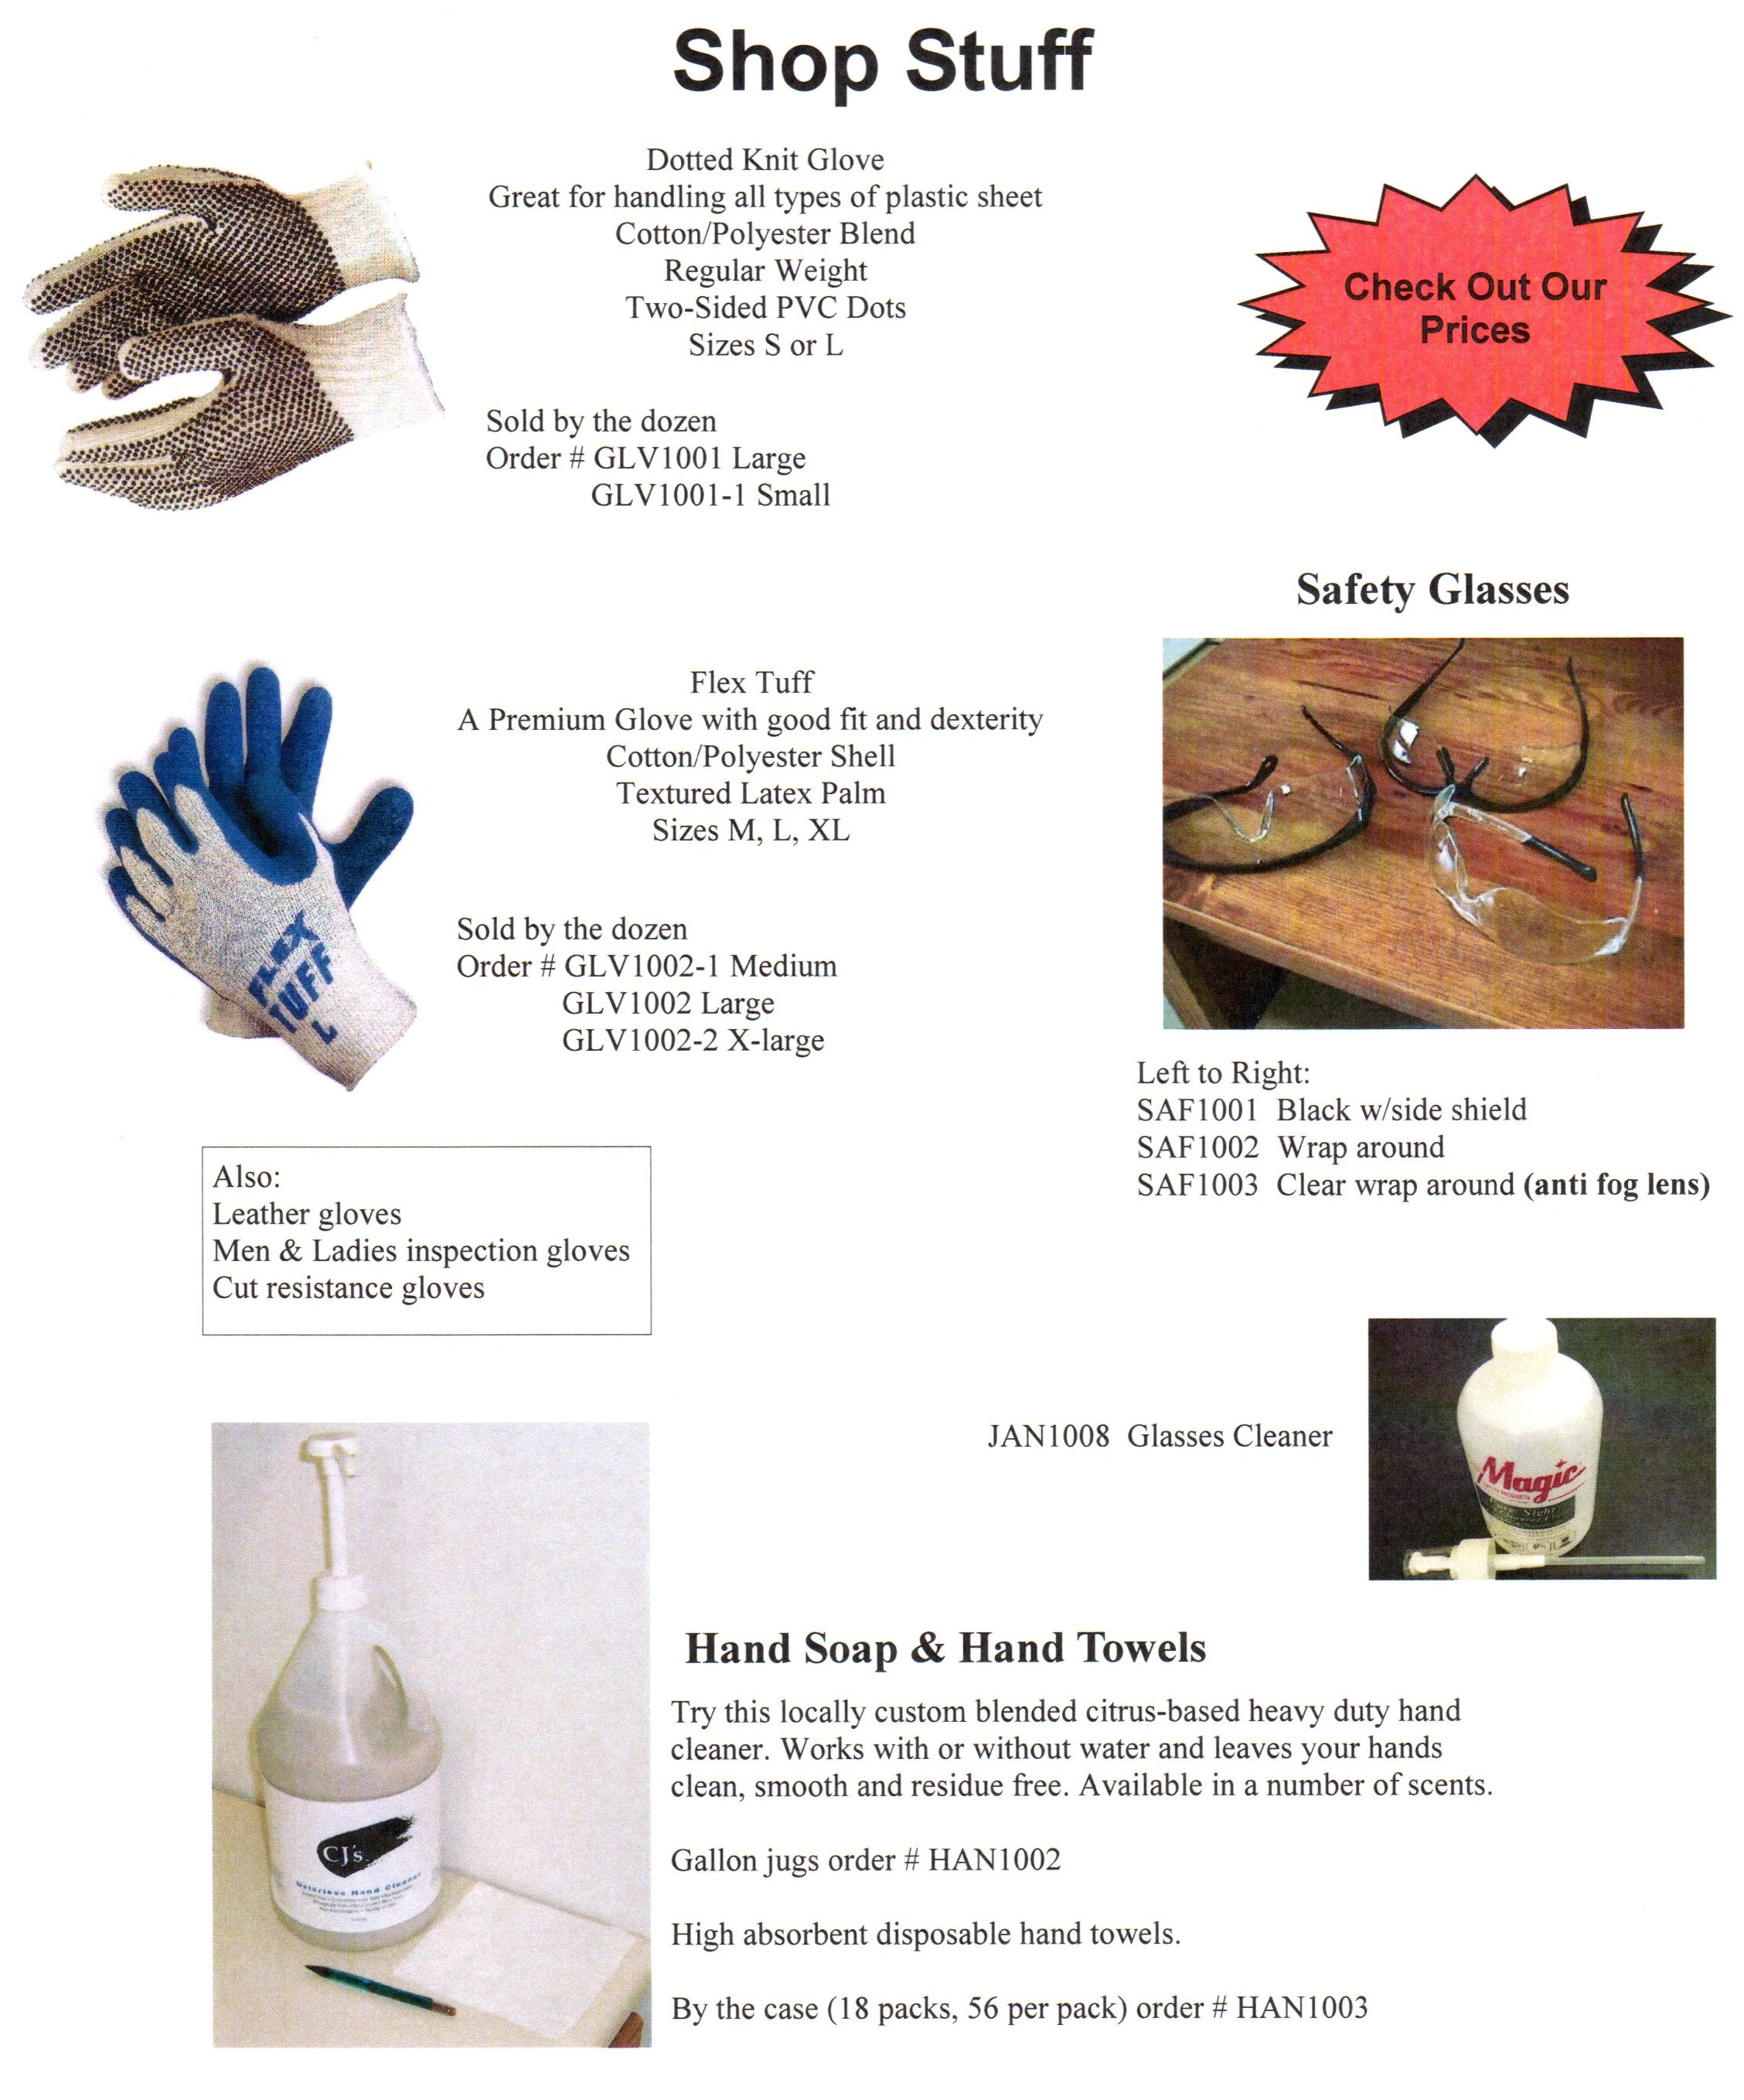 Gloves, Glasses, Hand Soap